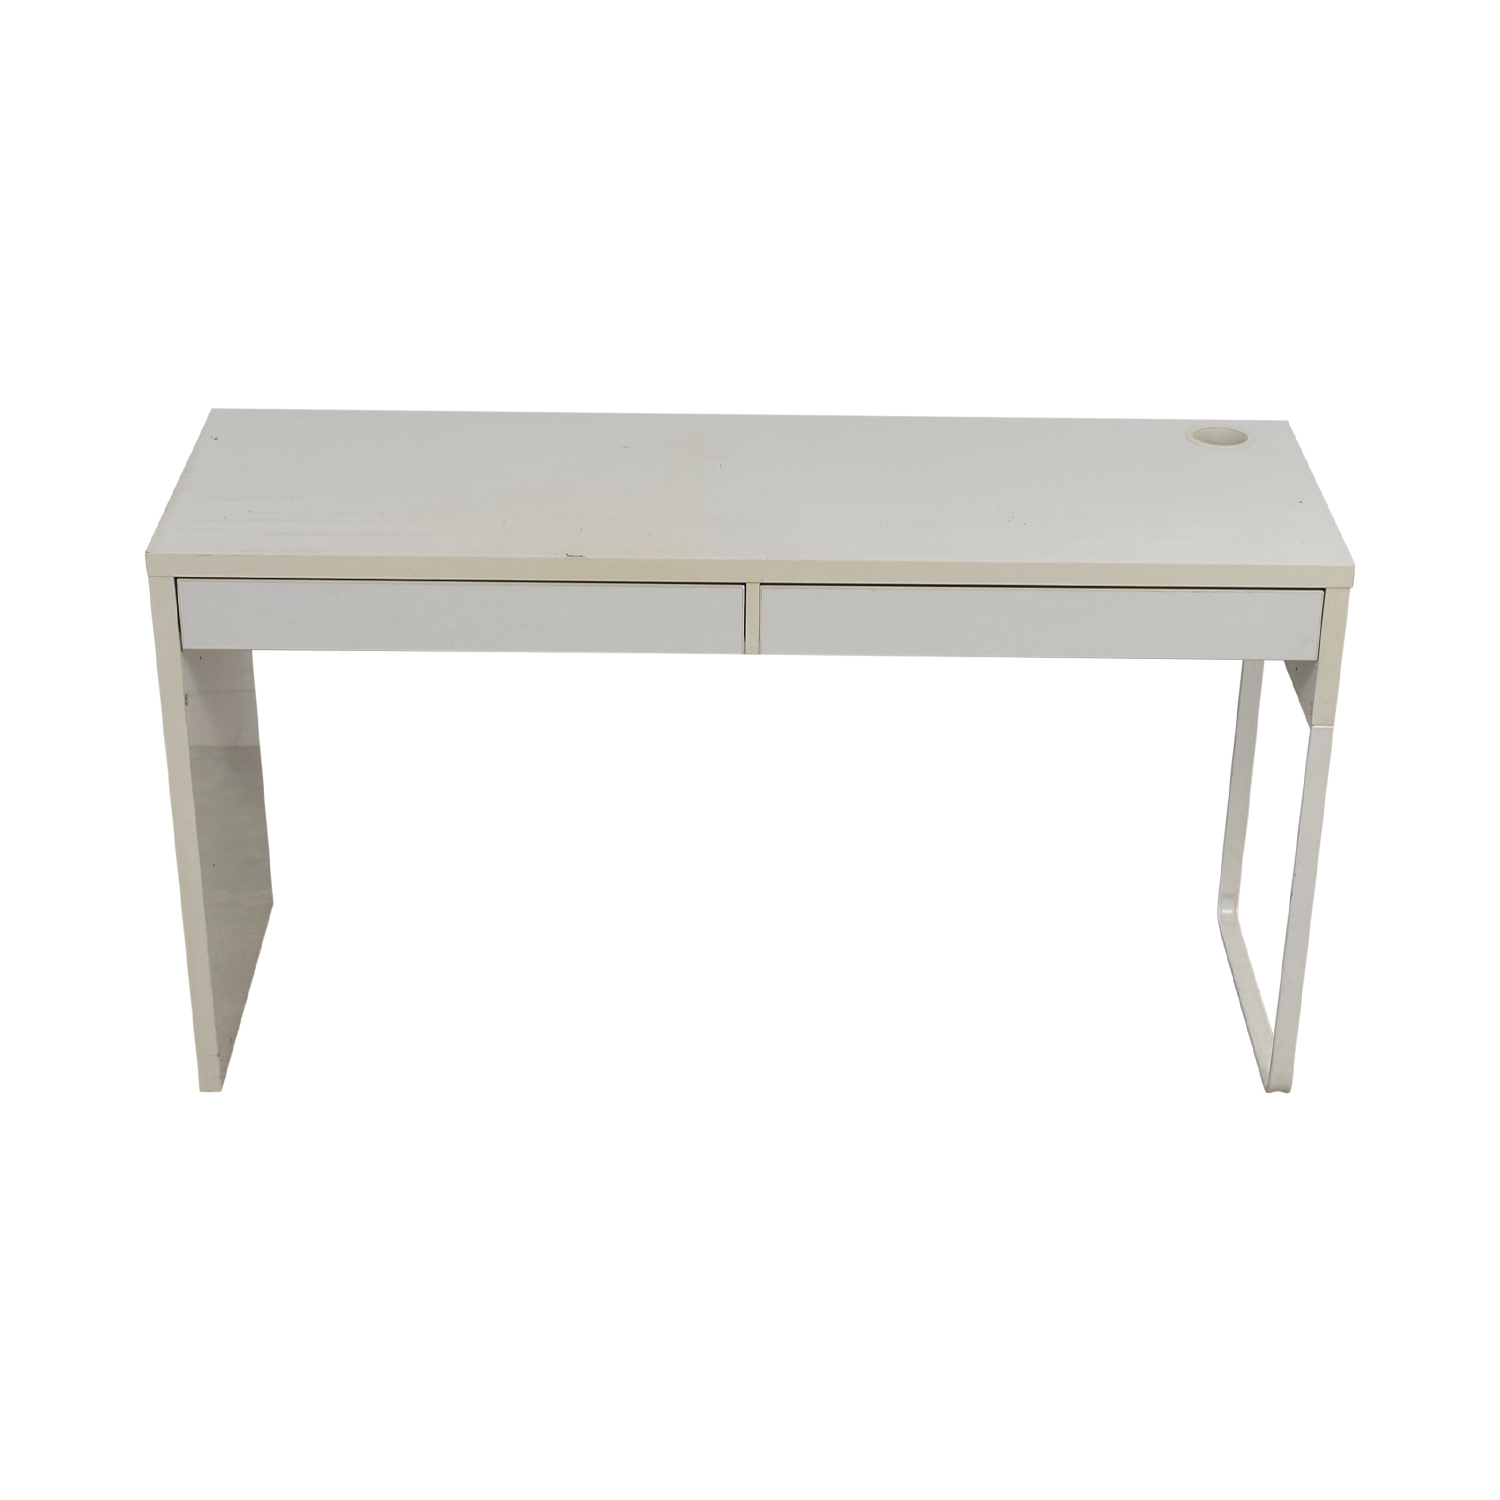 Long White Two-Drawer Desk dimensions